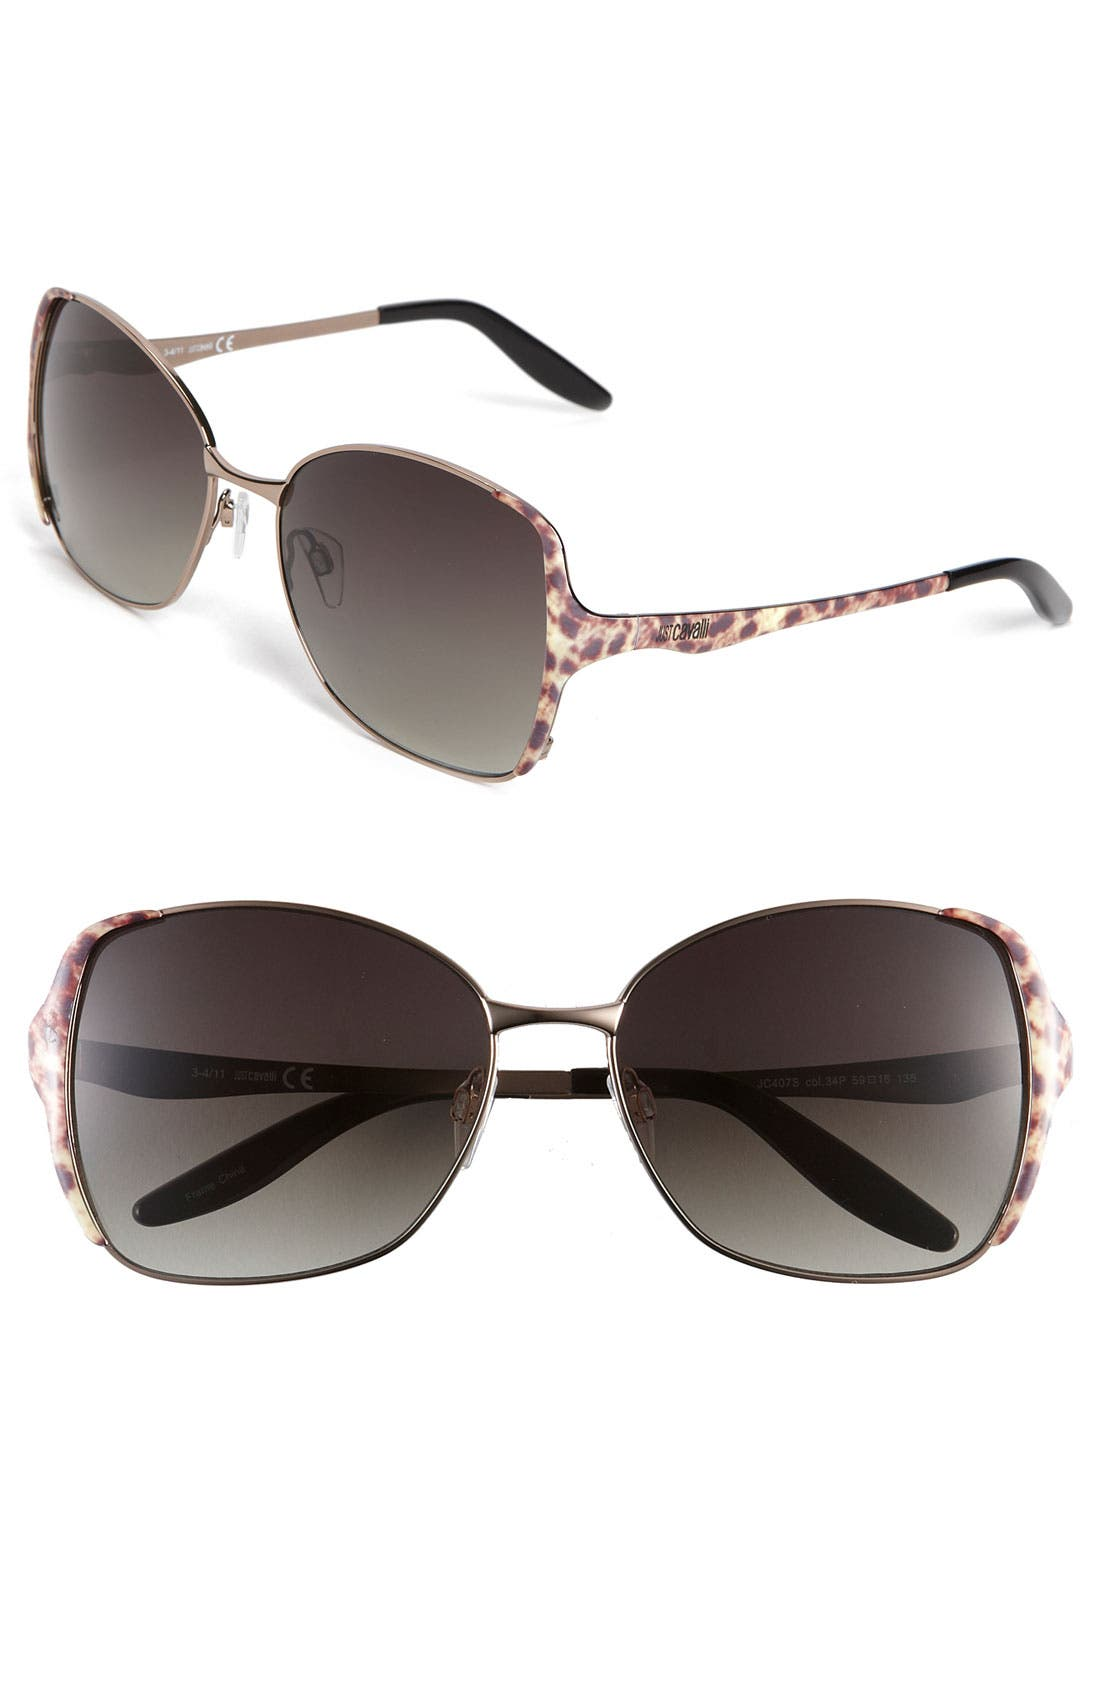 Main Image - Just Cavalli Oversized Sunglasses (Special Purchase)